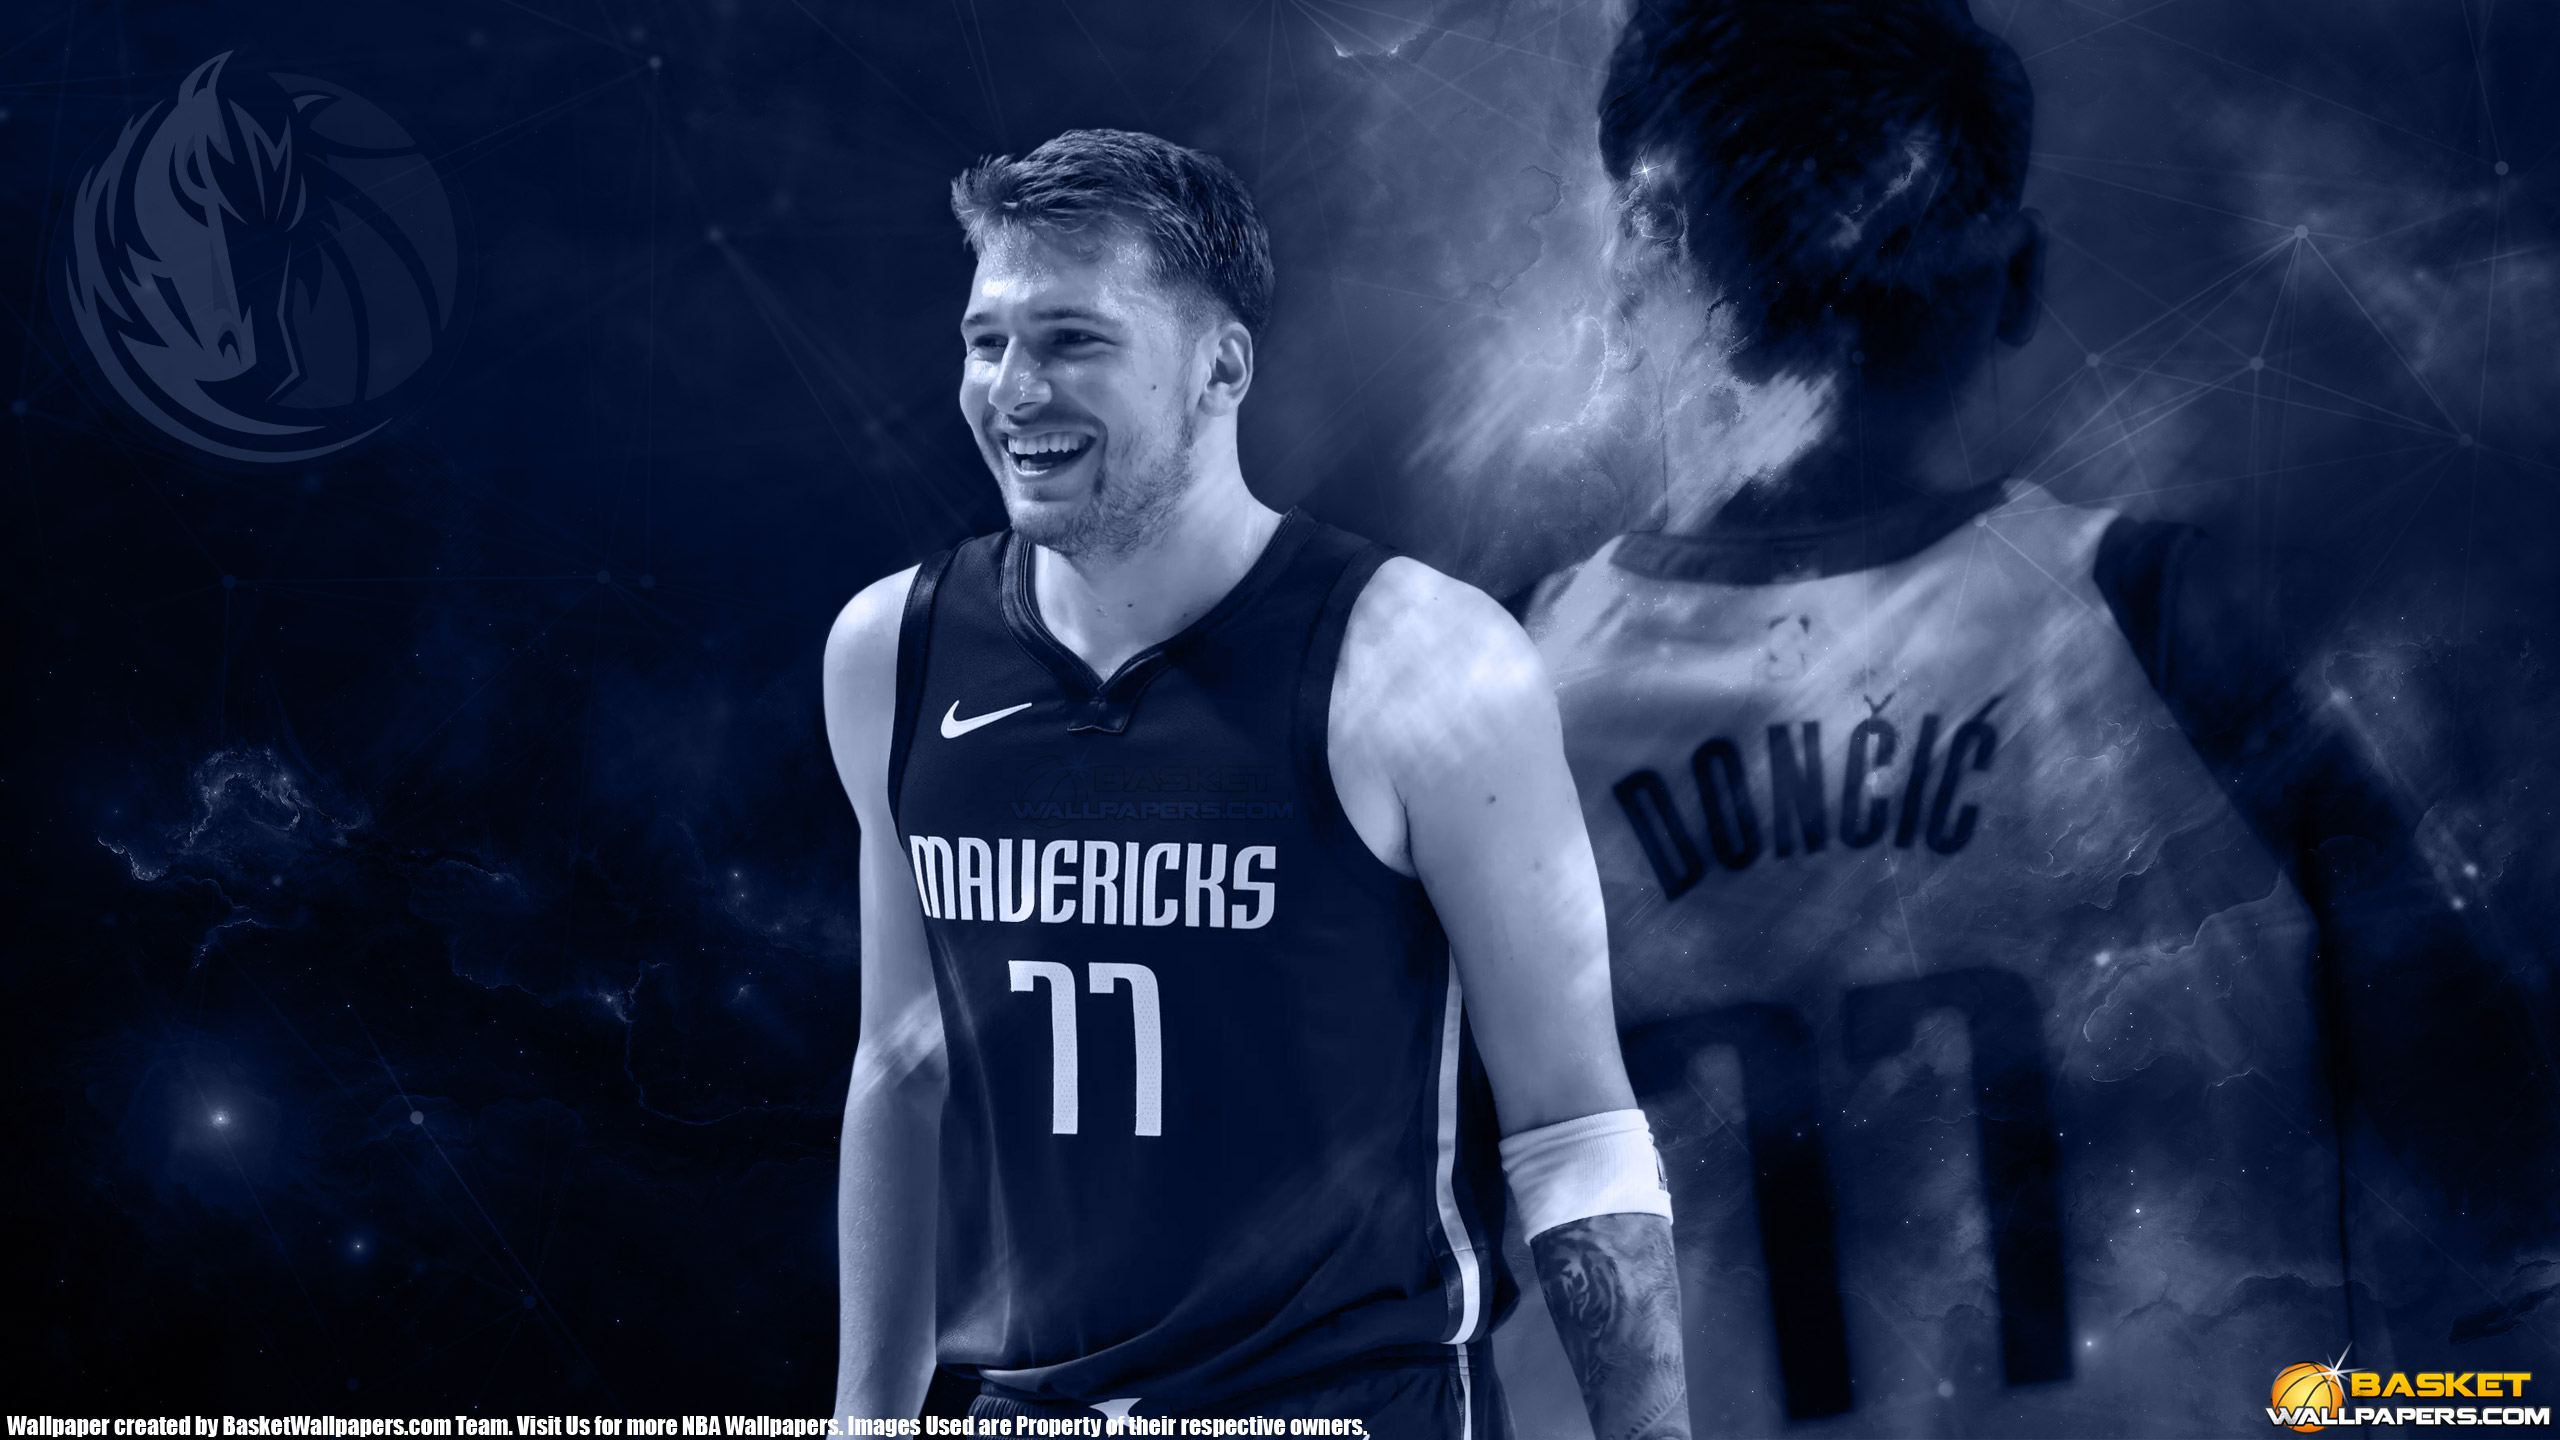 Luka Doncic Dallas Mavericks 2019 2560x1440 Wallpaper